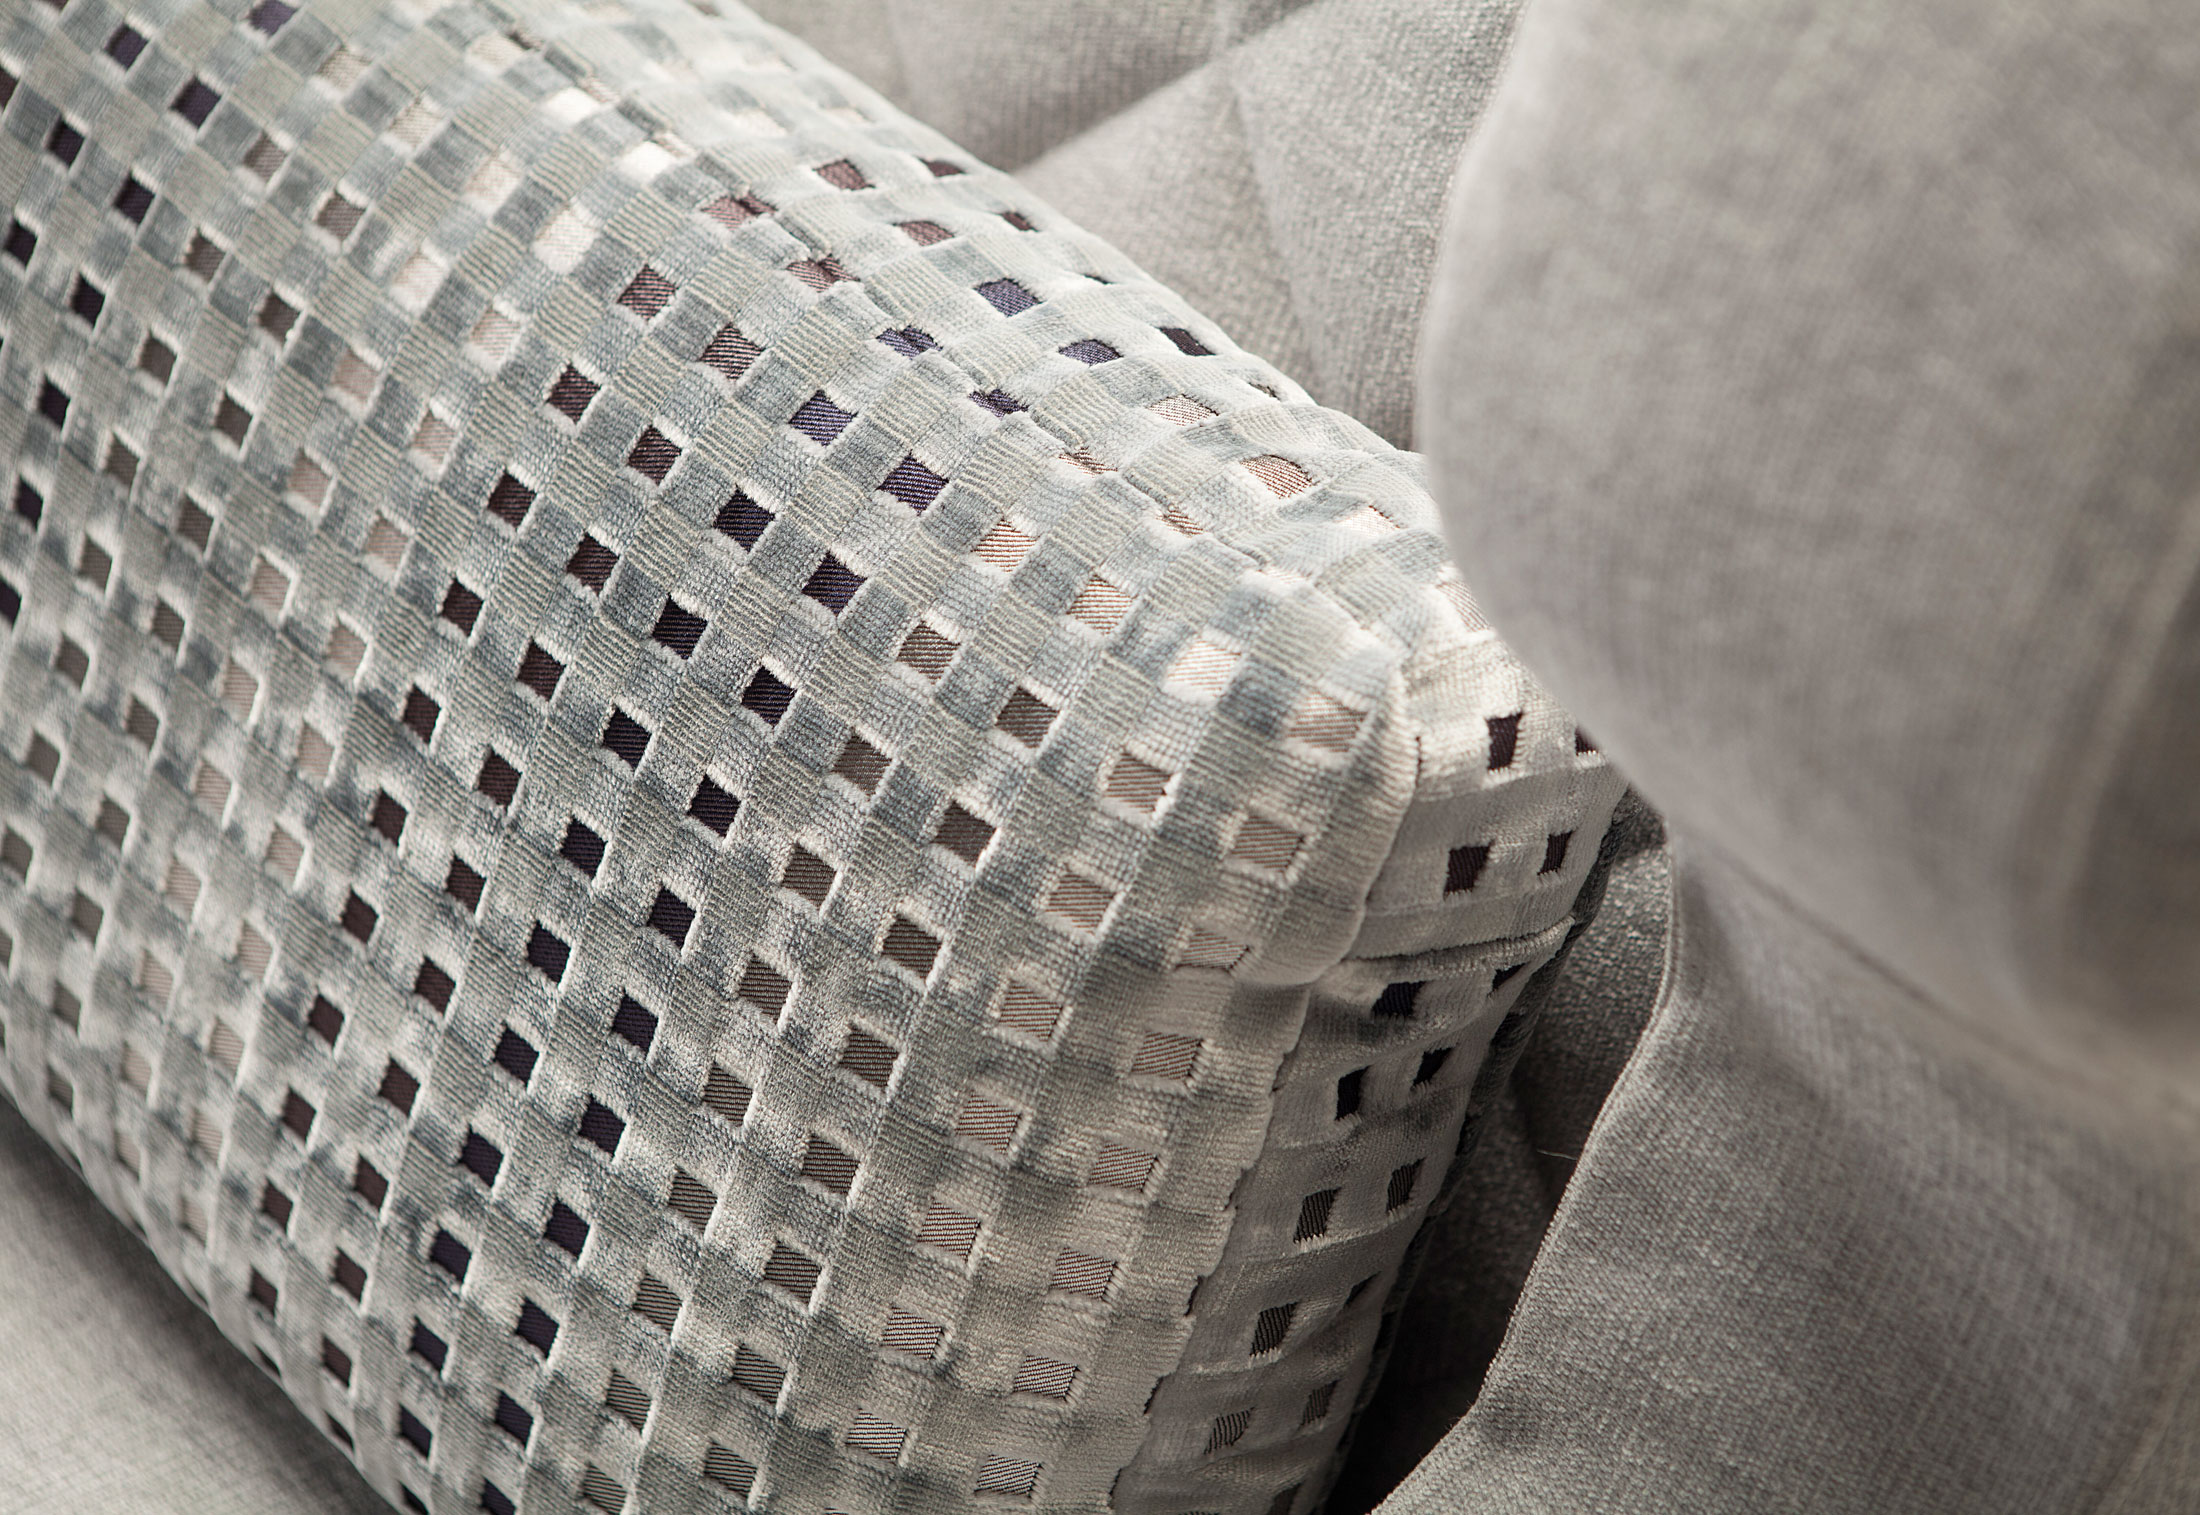 Morgan Sofabed by Eric Berthès for Milano Bedding